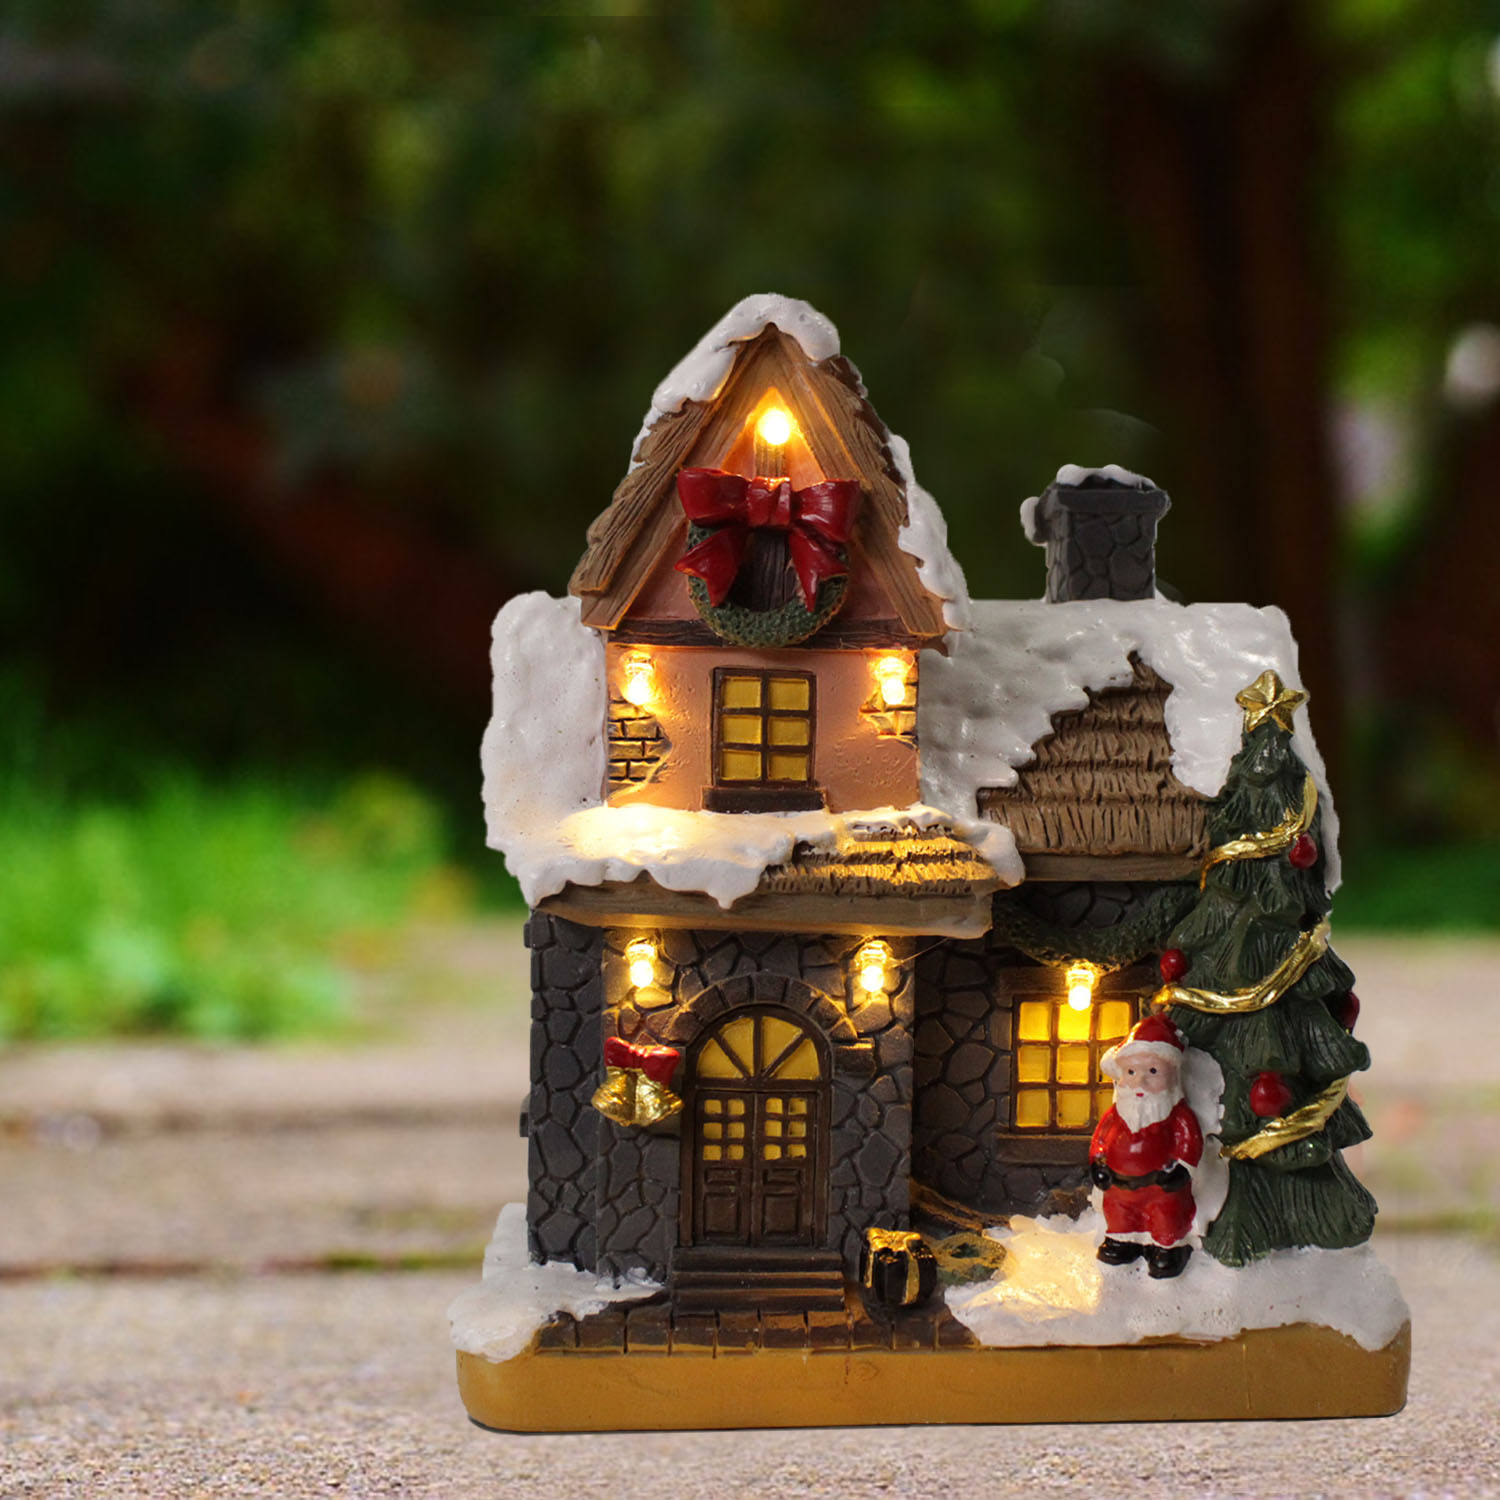 led lights car accessories Christmas Scene Village Decor Houses Small Town Ornament Holiday Gifts Xmas Decoration With L